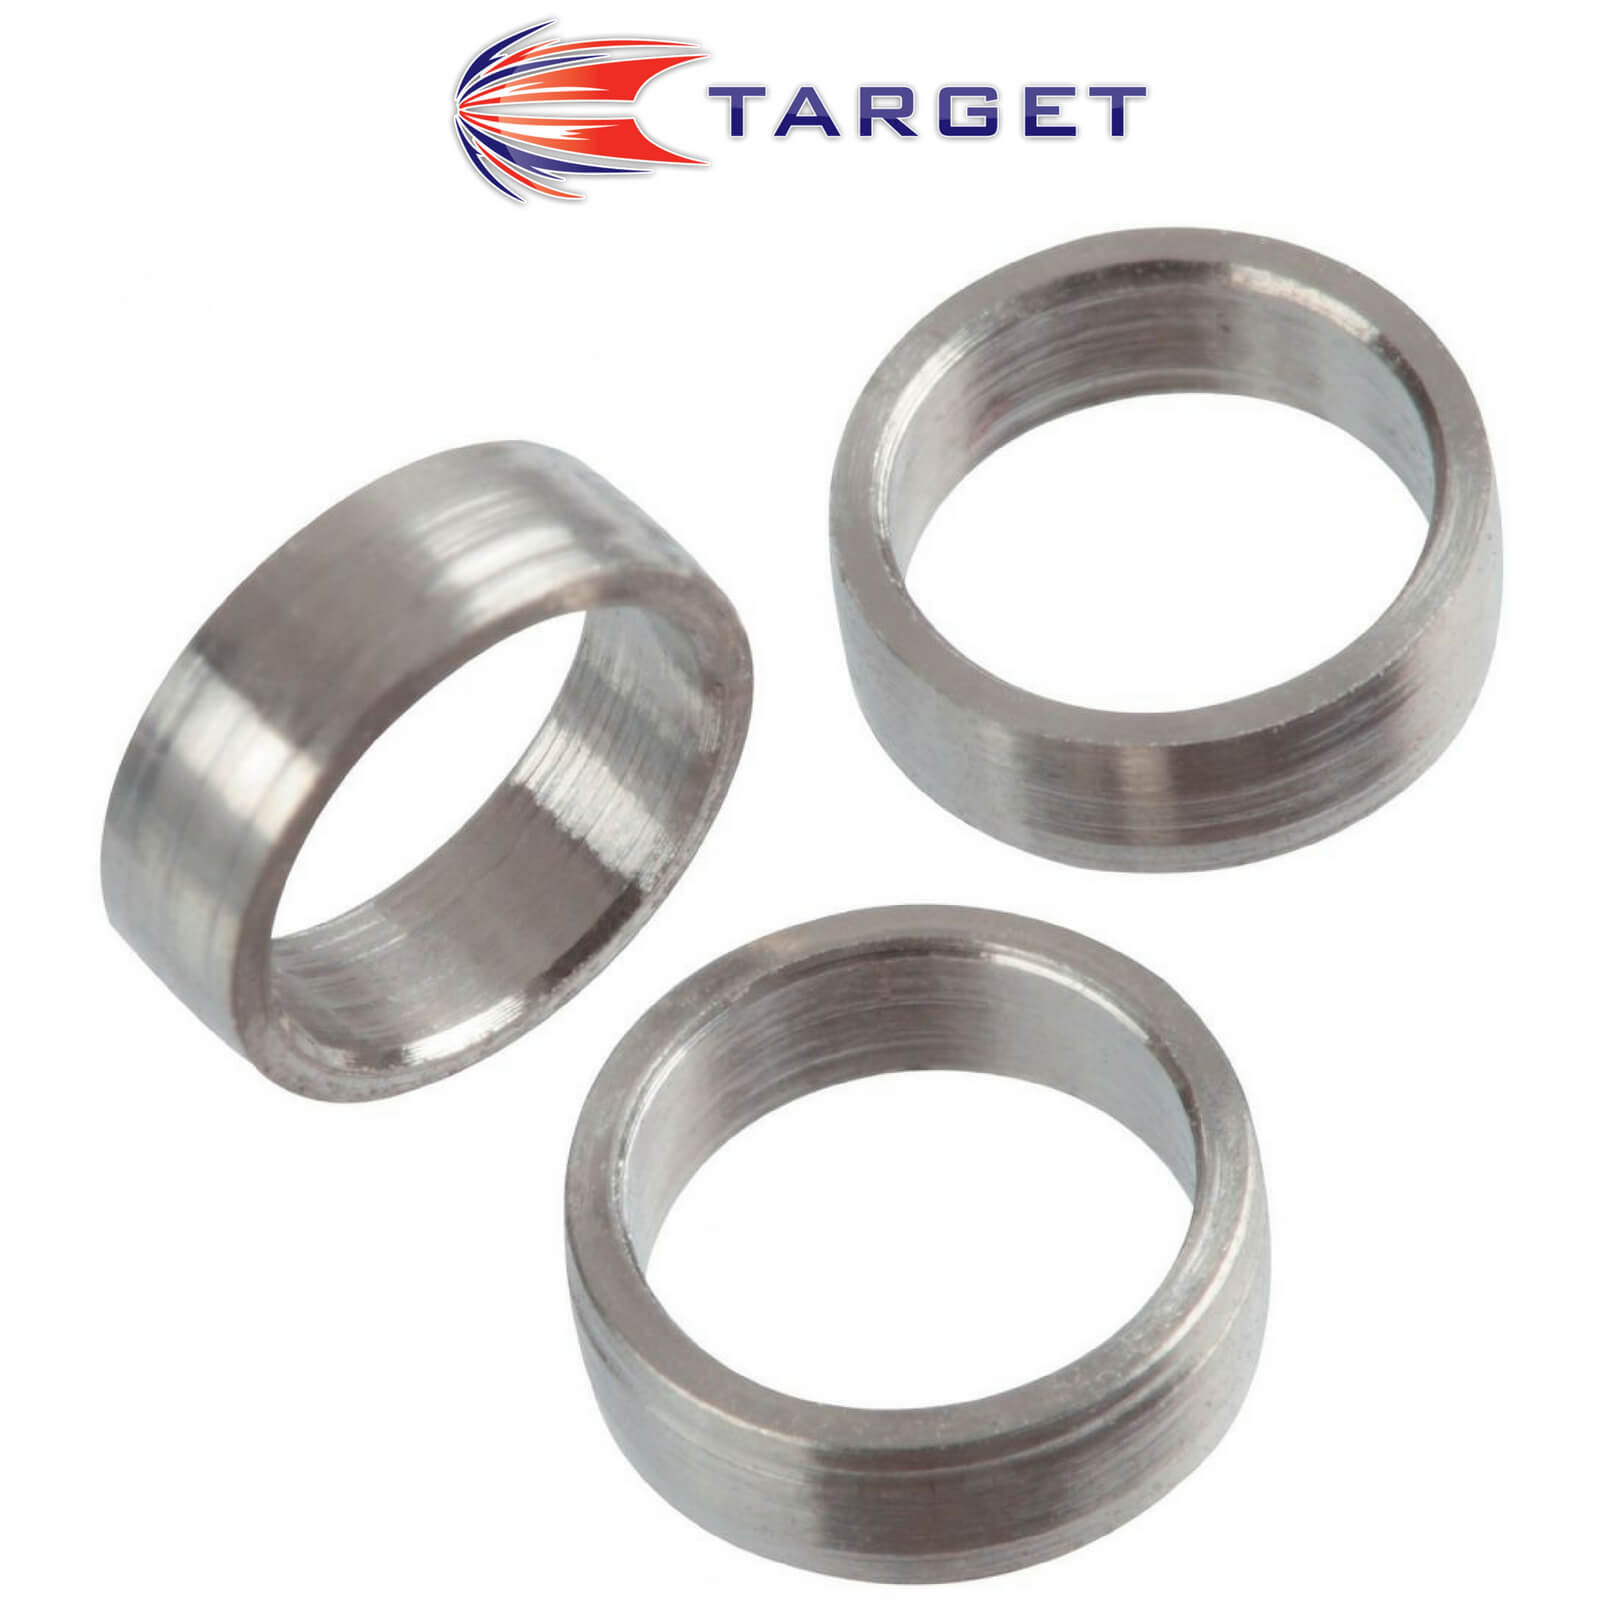 Shaft Accessories - Target - Titanium Slot Lock Dart Shaft Rings